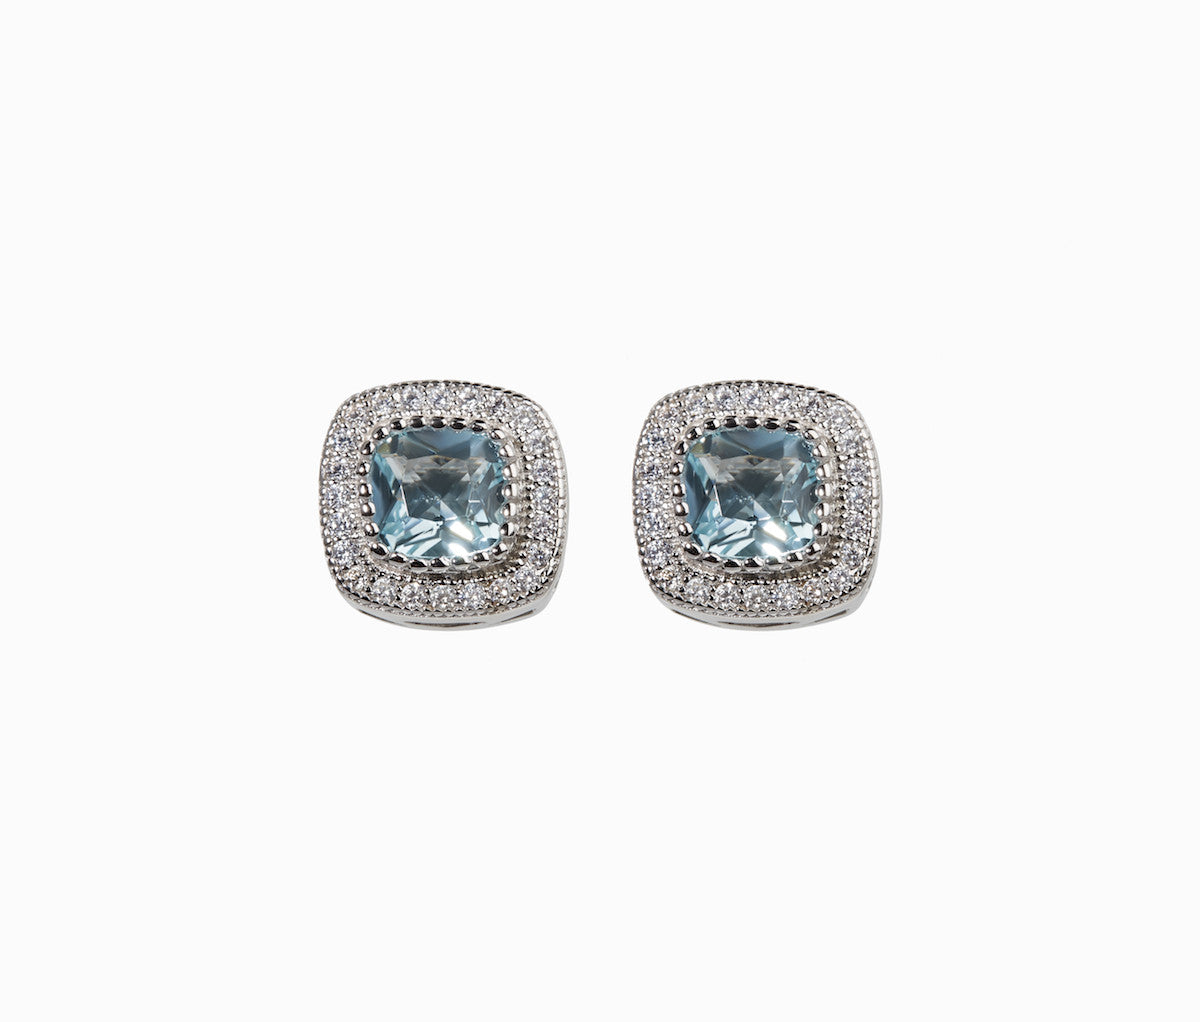 Light Blue Topaz Stud Earrings